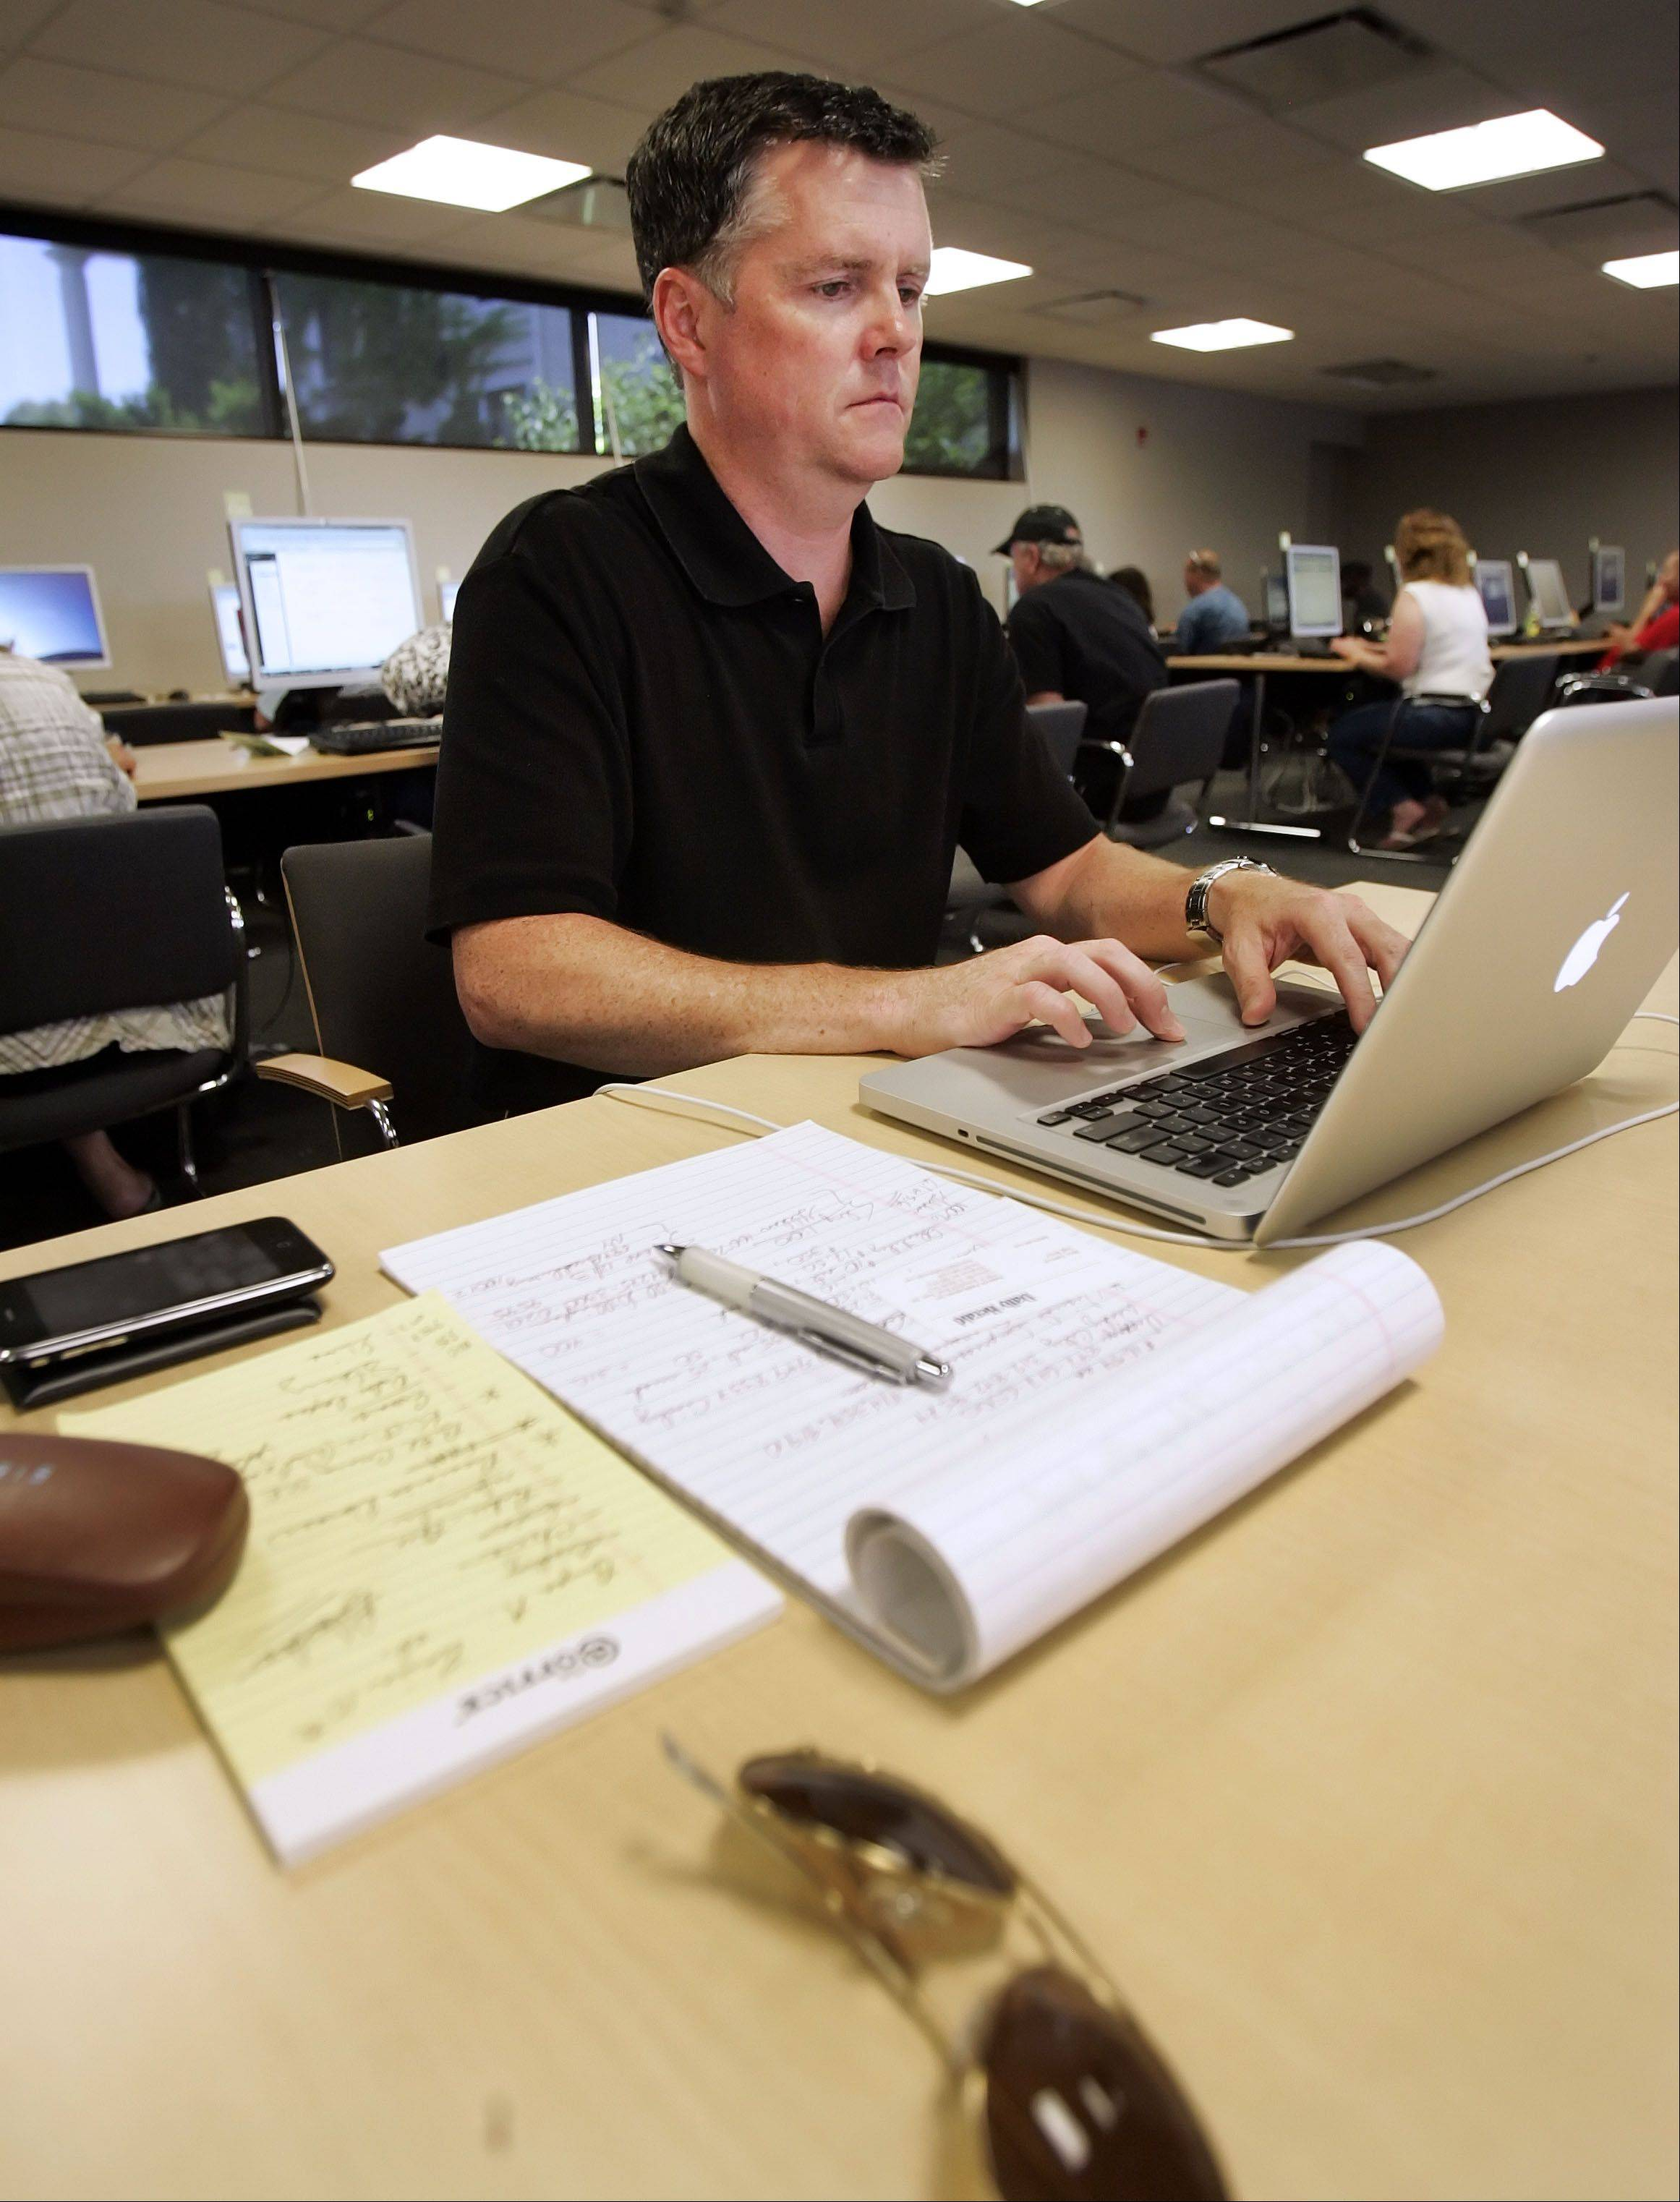 Businessman Parker Melvin of McHenry takes advantage of free Wi-Fi at Cook Memorial Public Library in Libertville Tuesday. Melvin is without power and is working out of the library after thunderstorms left hundreds of thousands of people without power.